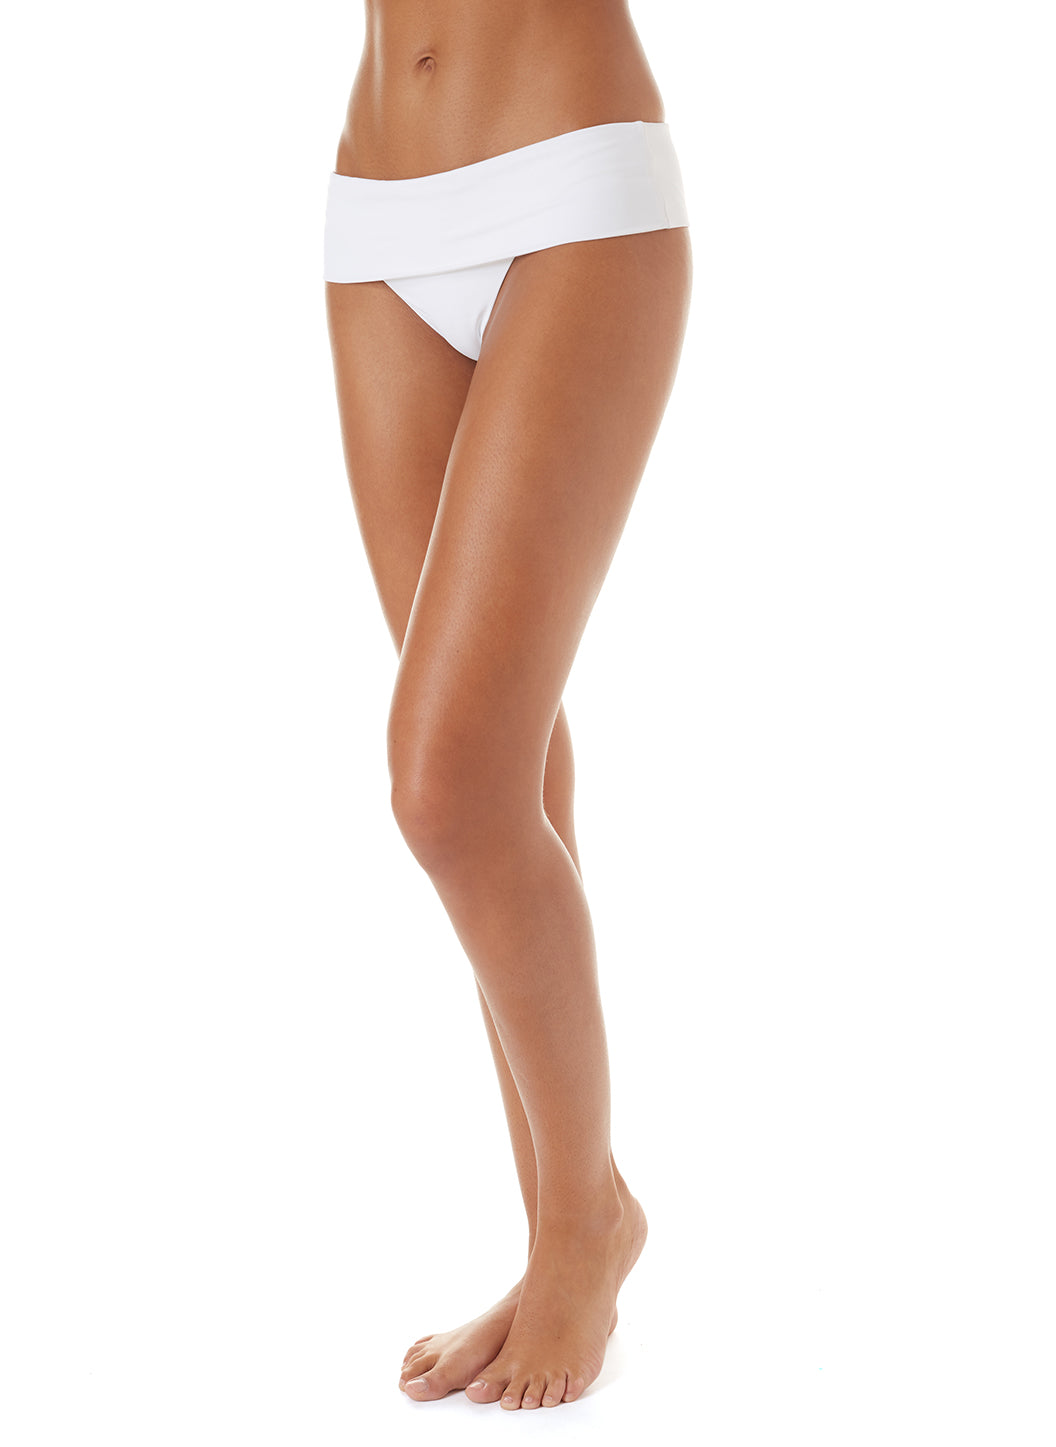 Exclusive Brussels Fold-Over Bikini Bottom White - Melissa Odabash Swimwear